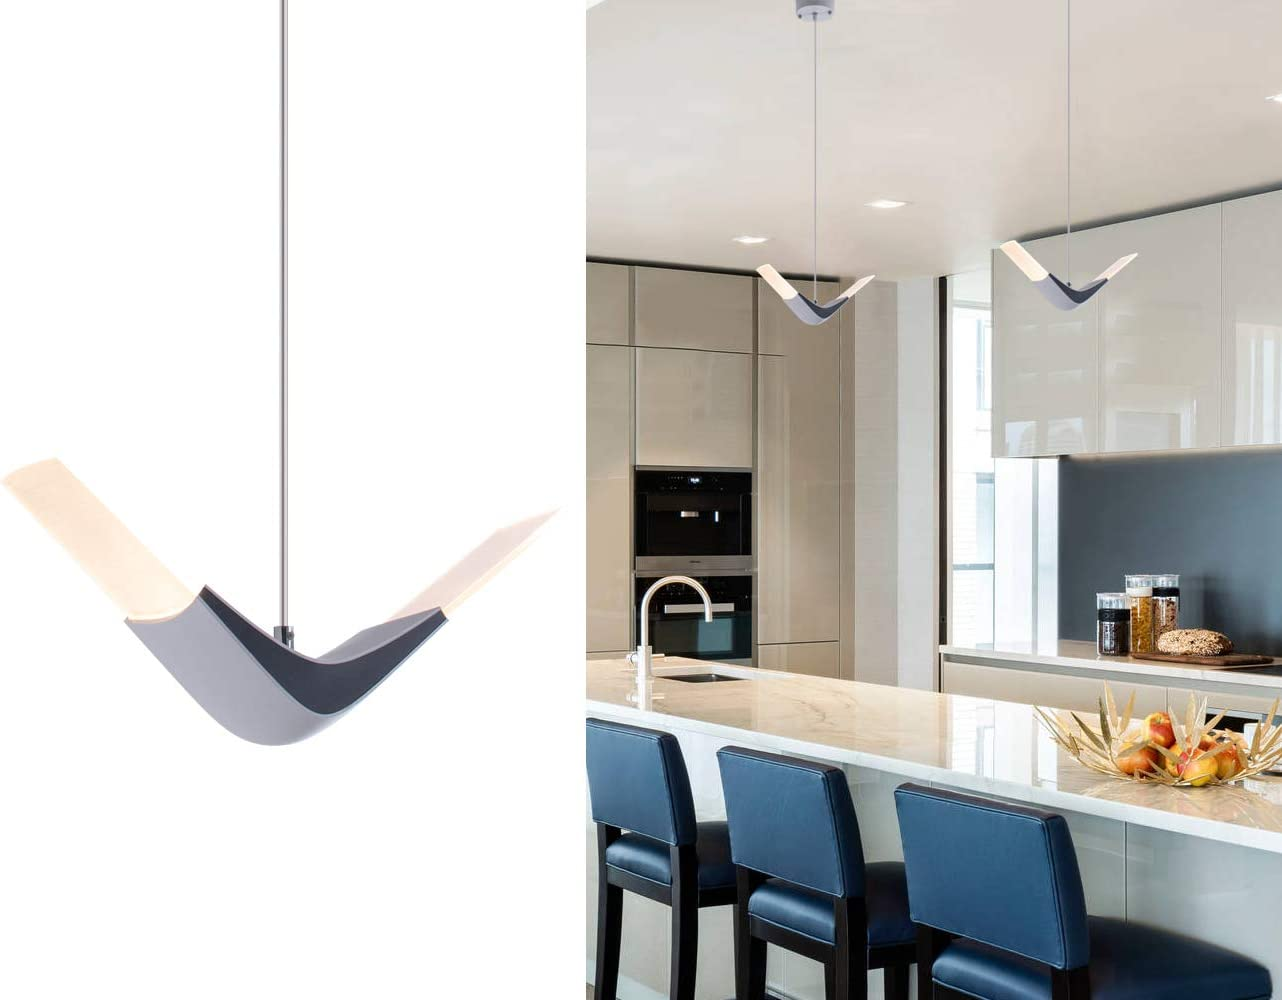 Modern LED Island Pendant Light Mini Contemporary Hanging Chandelier with Acrylic Shape for Kitchen Island Living Dining Room Bedroom by Bewamf